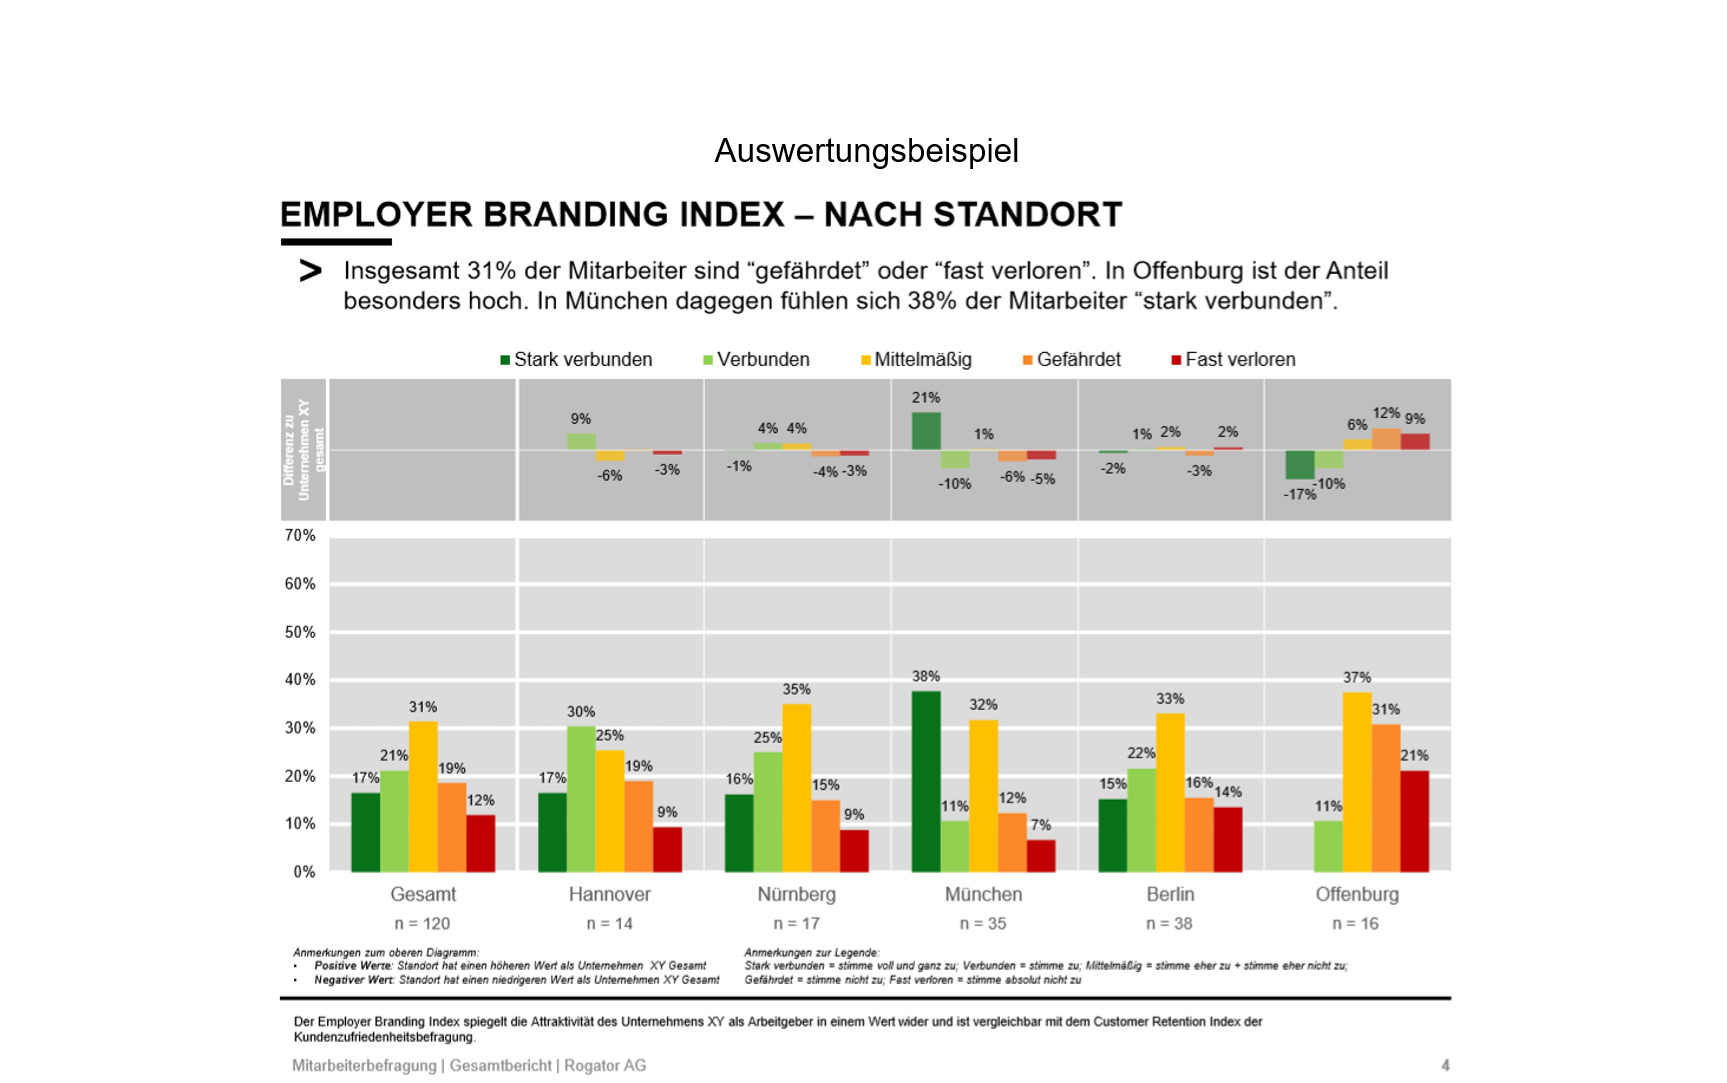 Employer Branding_Auswertungsbeispiel3